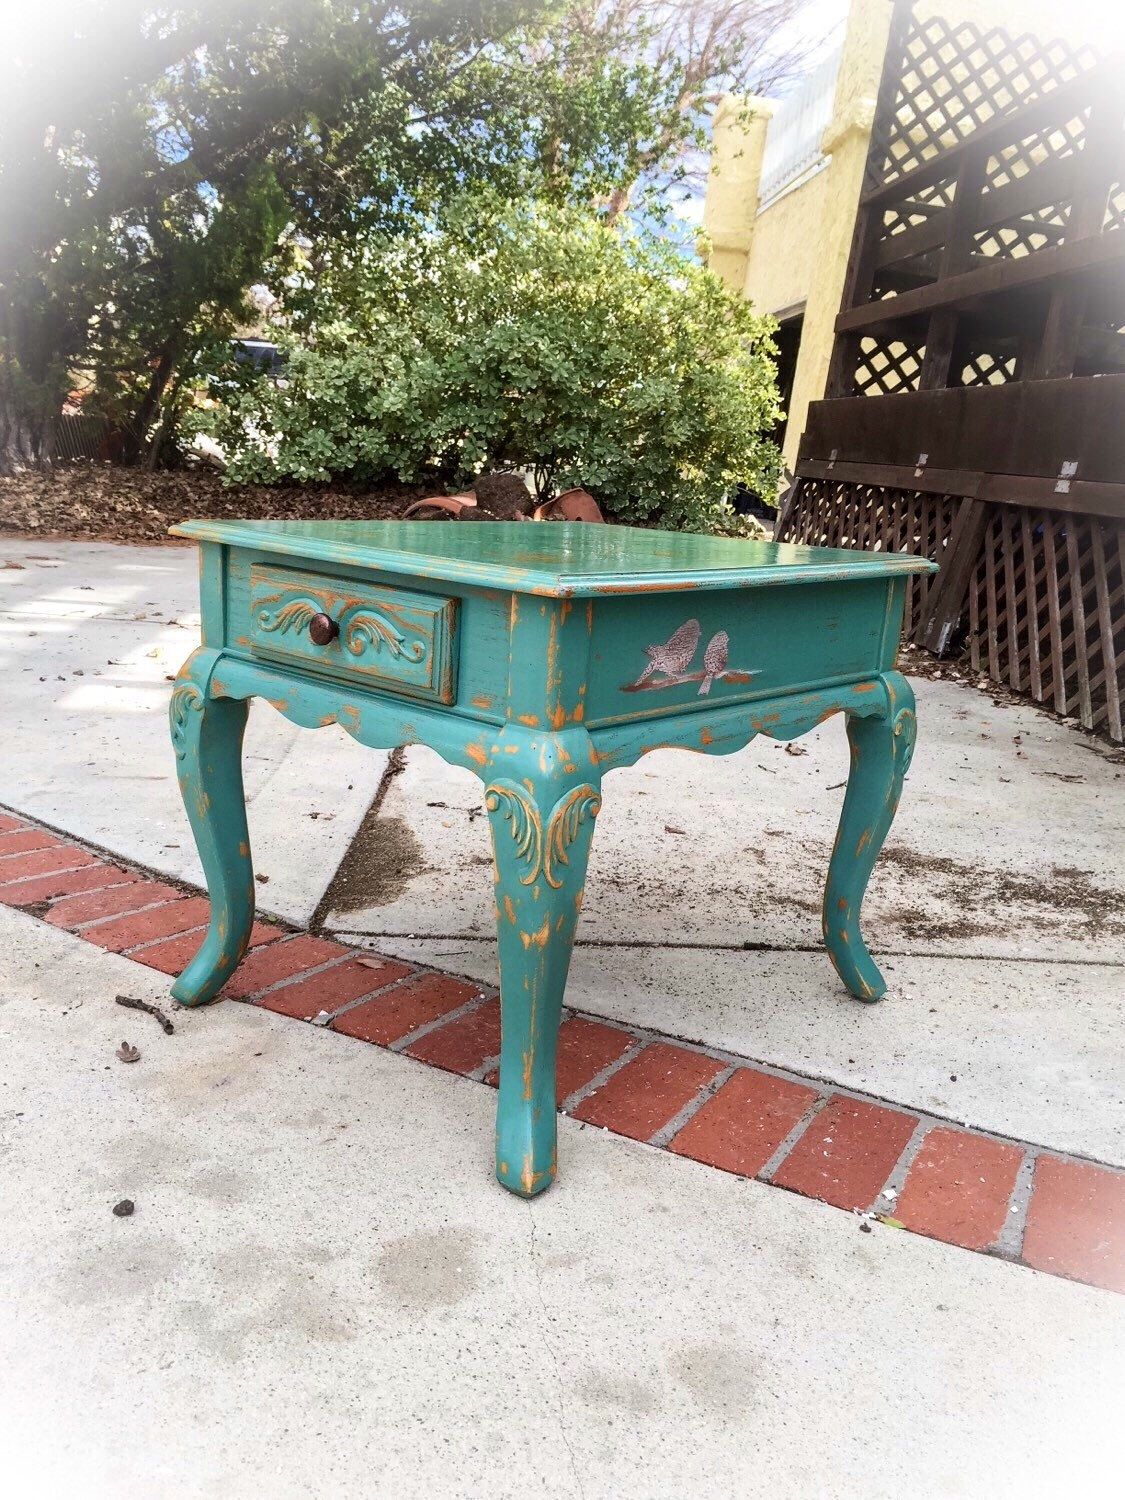 Shabby Chic Table, Antique, Seafoam Green, Table, W/ Bird Accents,